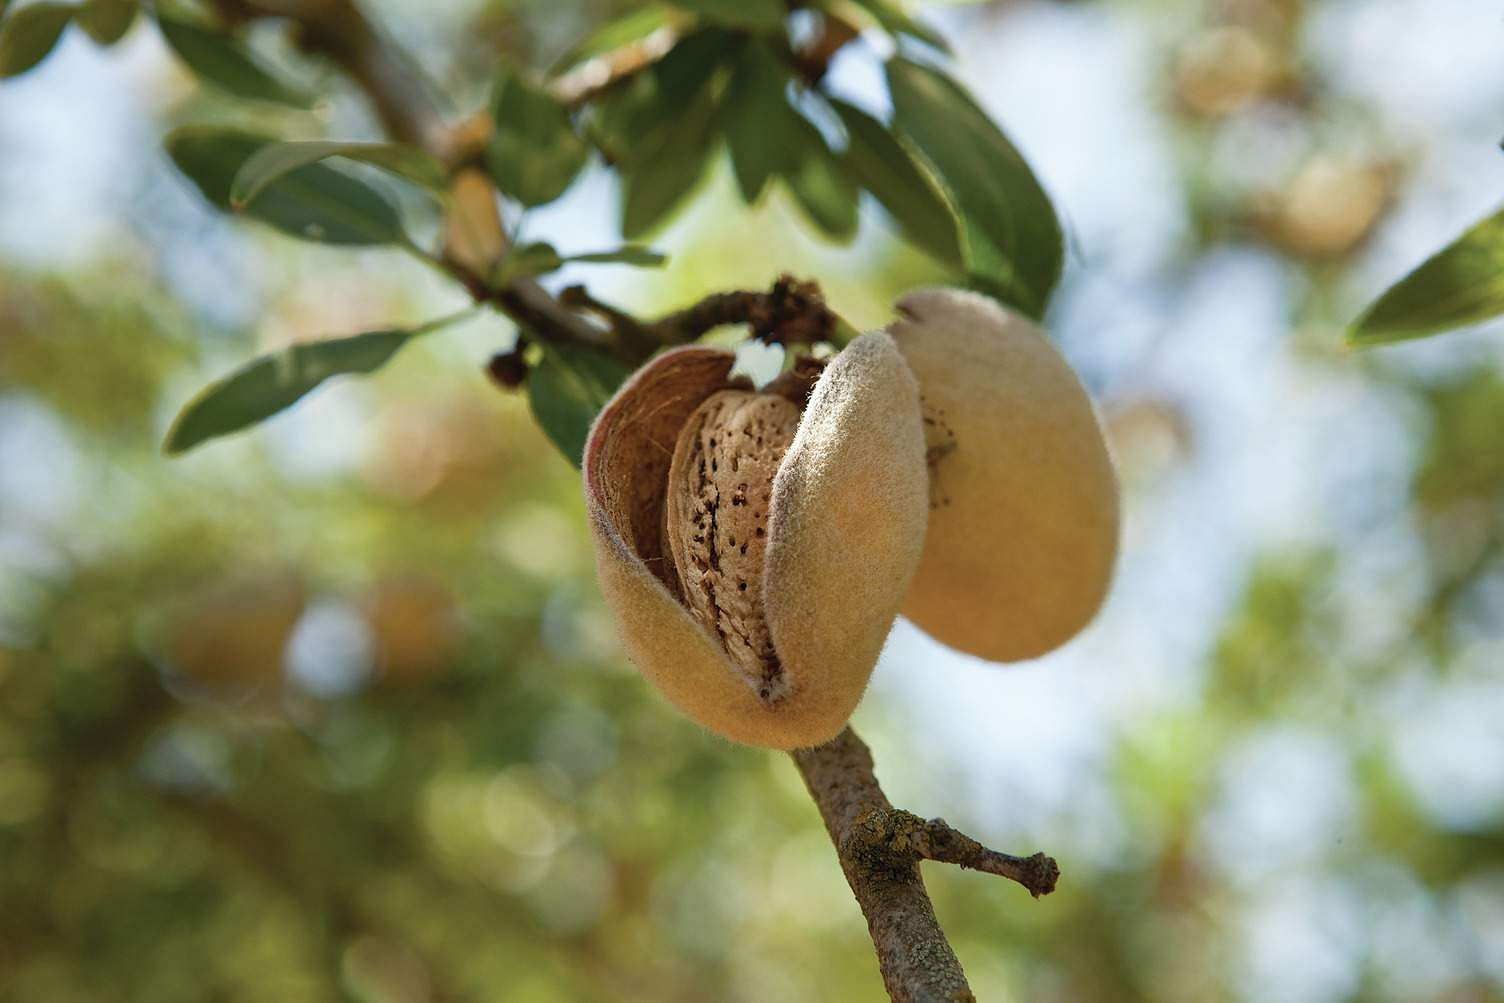 An almond ready for picking